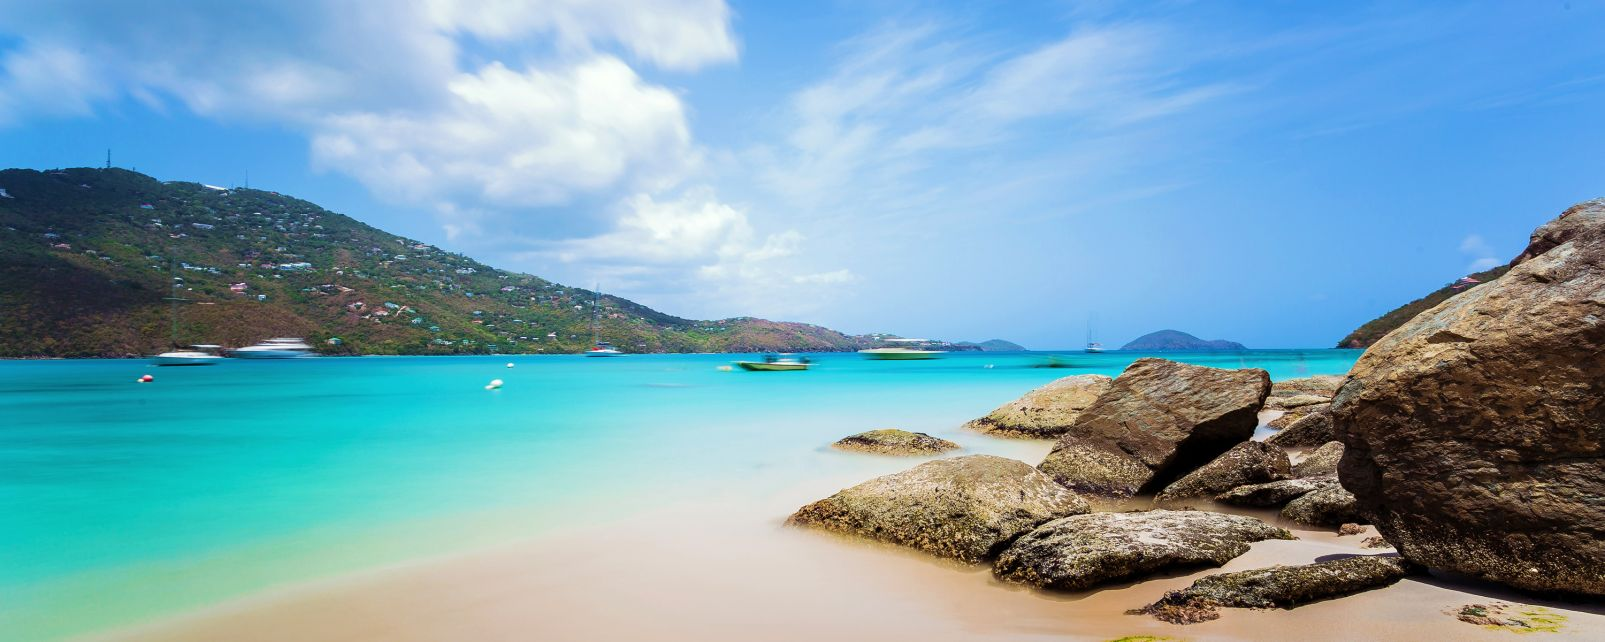 The Beaches Of St Thomas Coasts United States Virgin